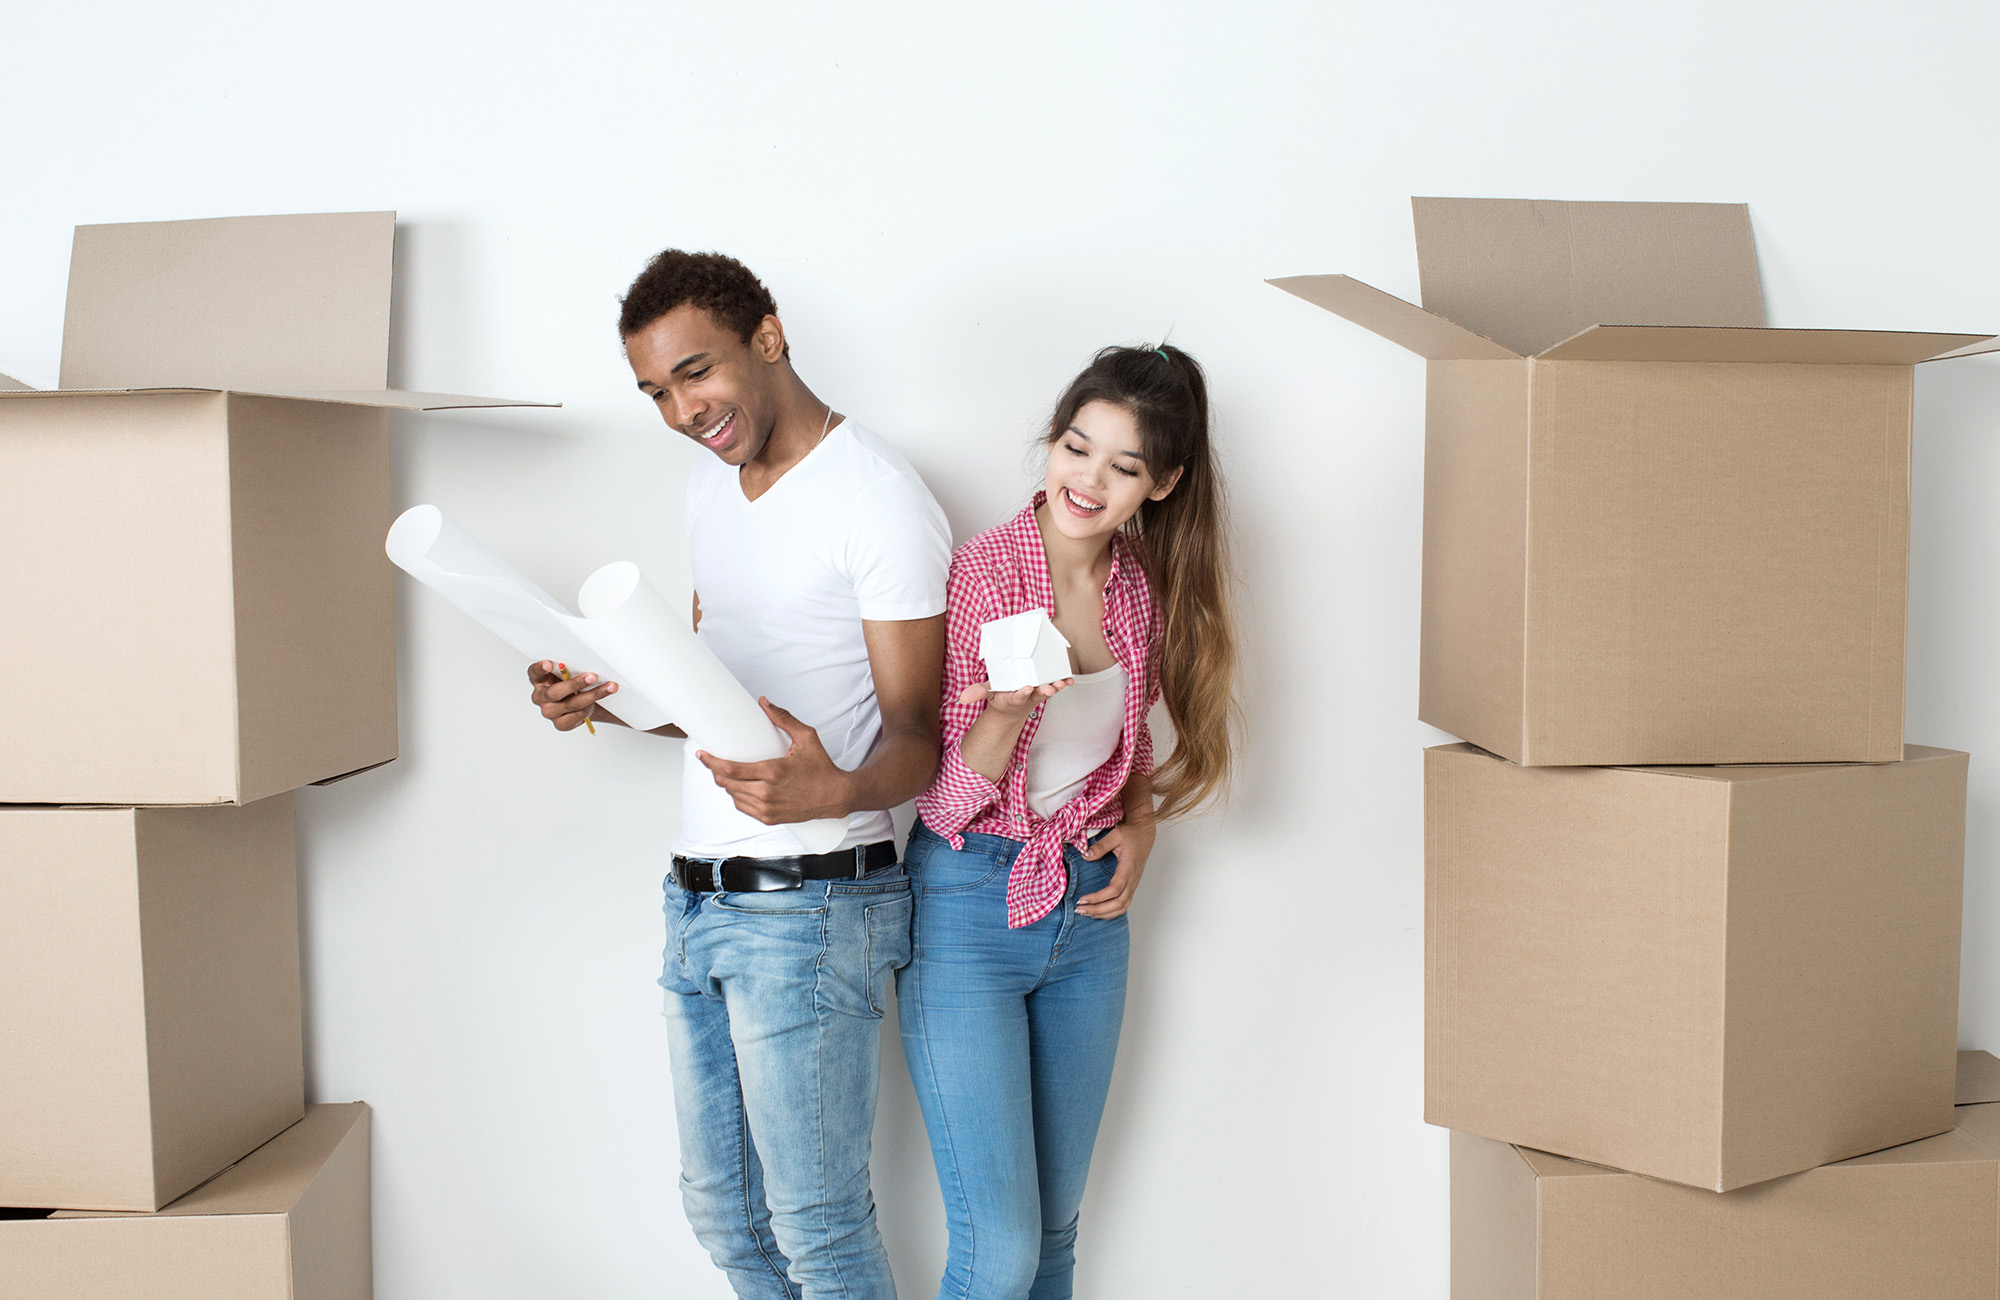 Couple moving into new place